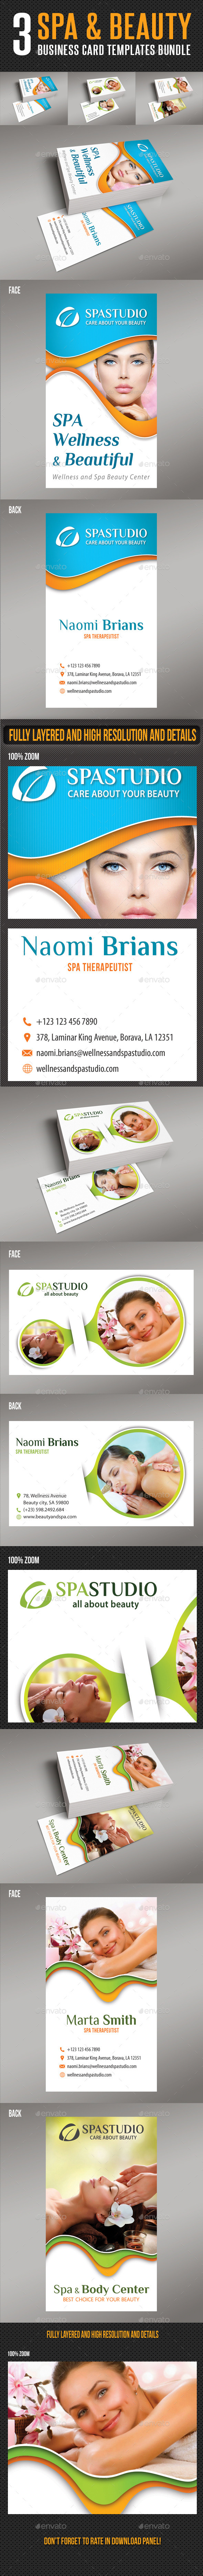 3 in 1 Spa And Beauty Business Card Bundle